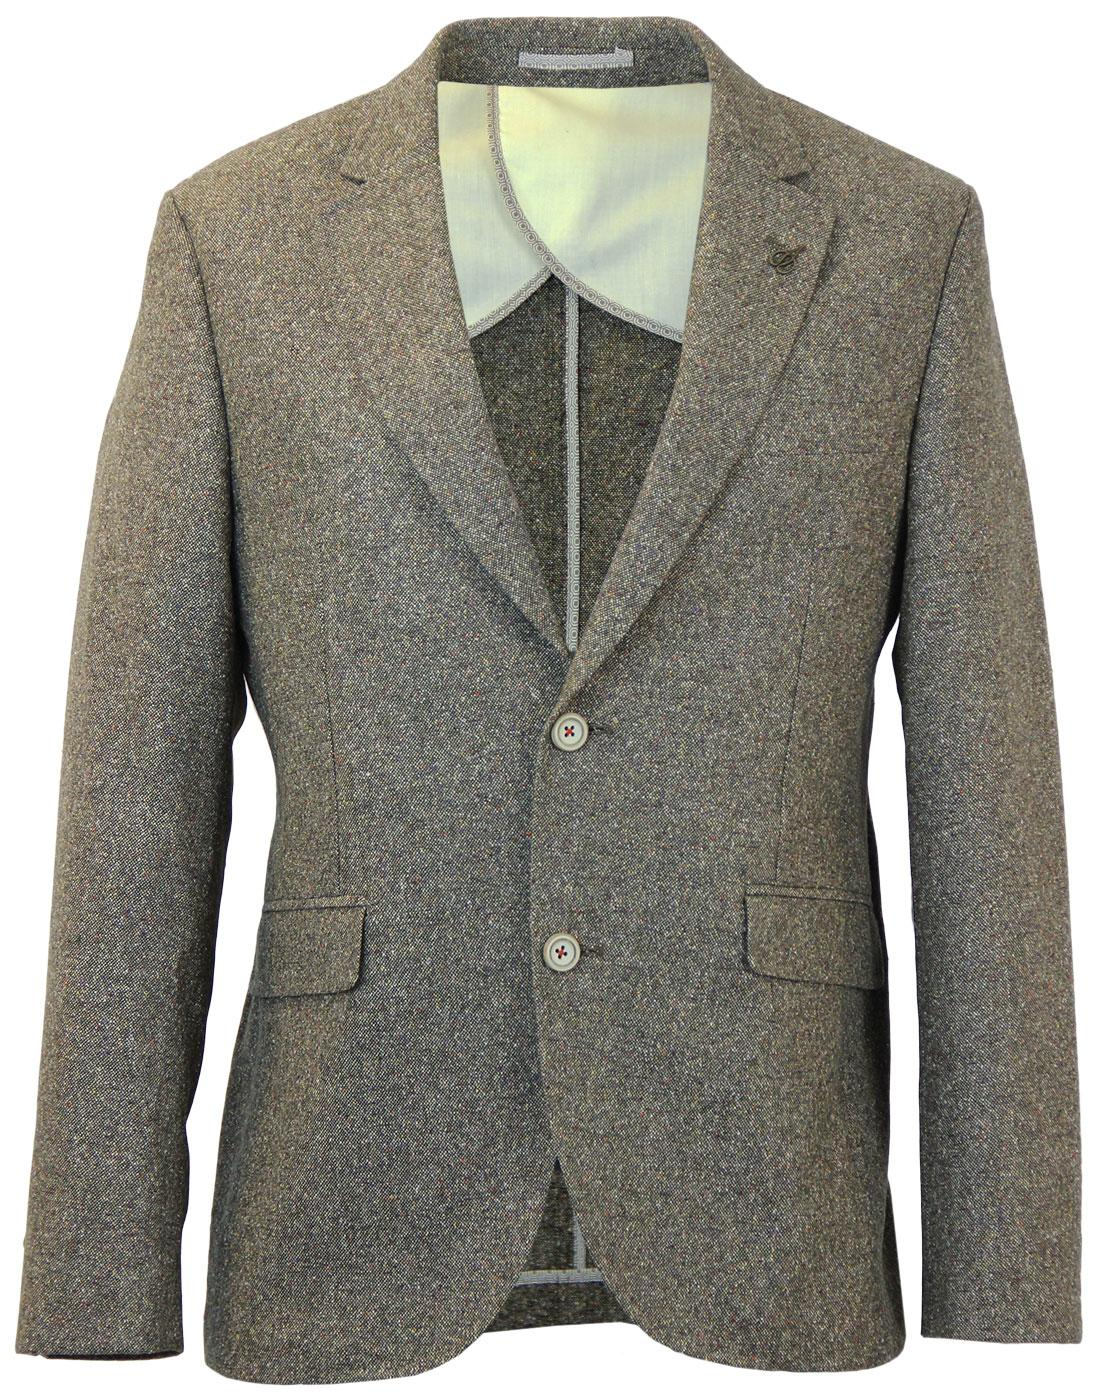 GIBSON LONDON 2 Button Donegal Suit Jacket OLIVE